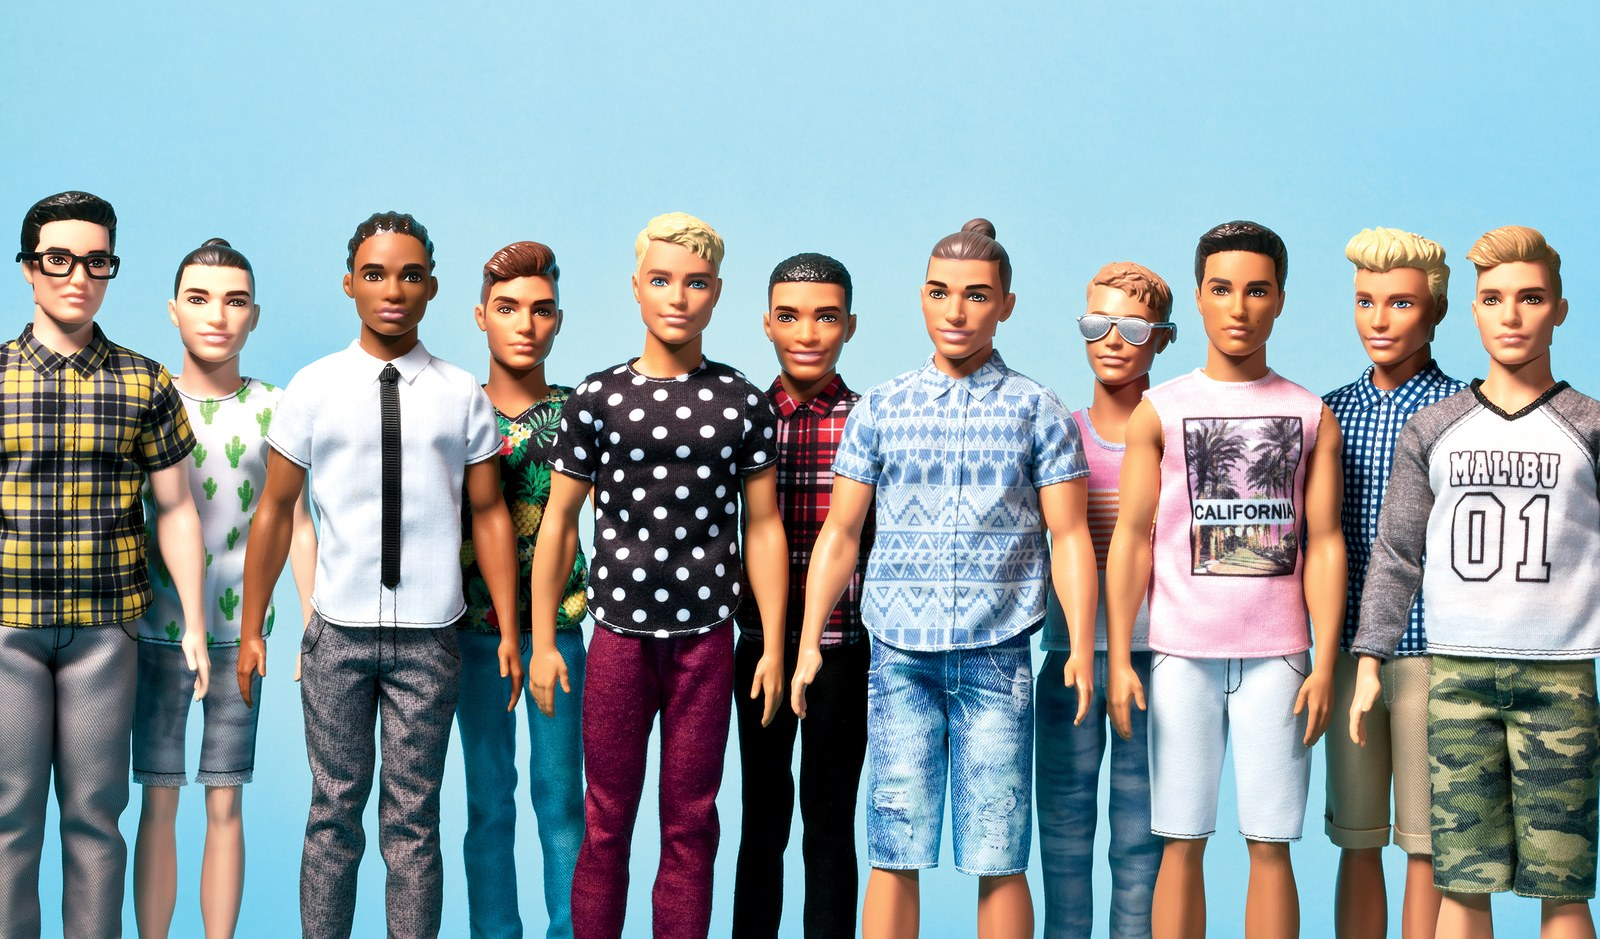 ken dolls of the future. courtesy of gq.